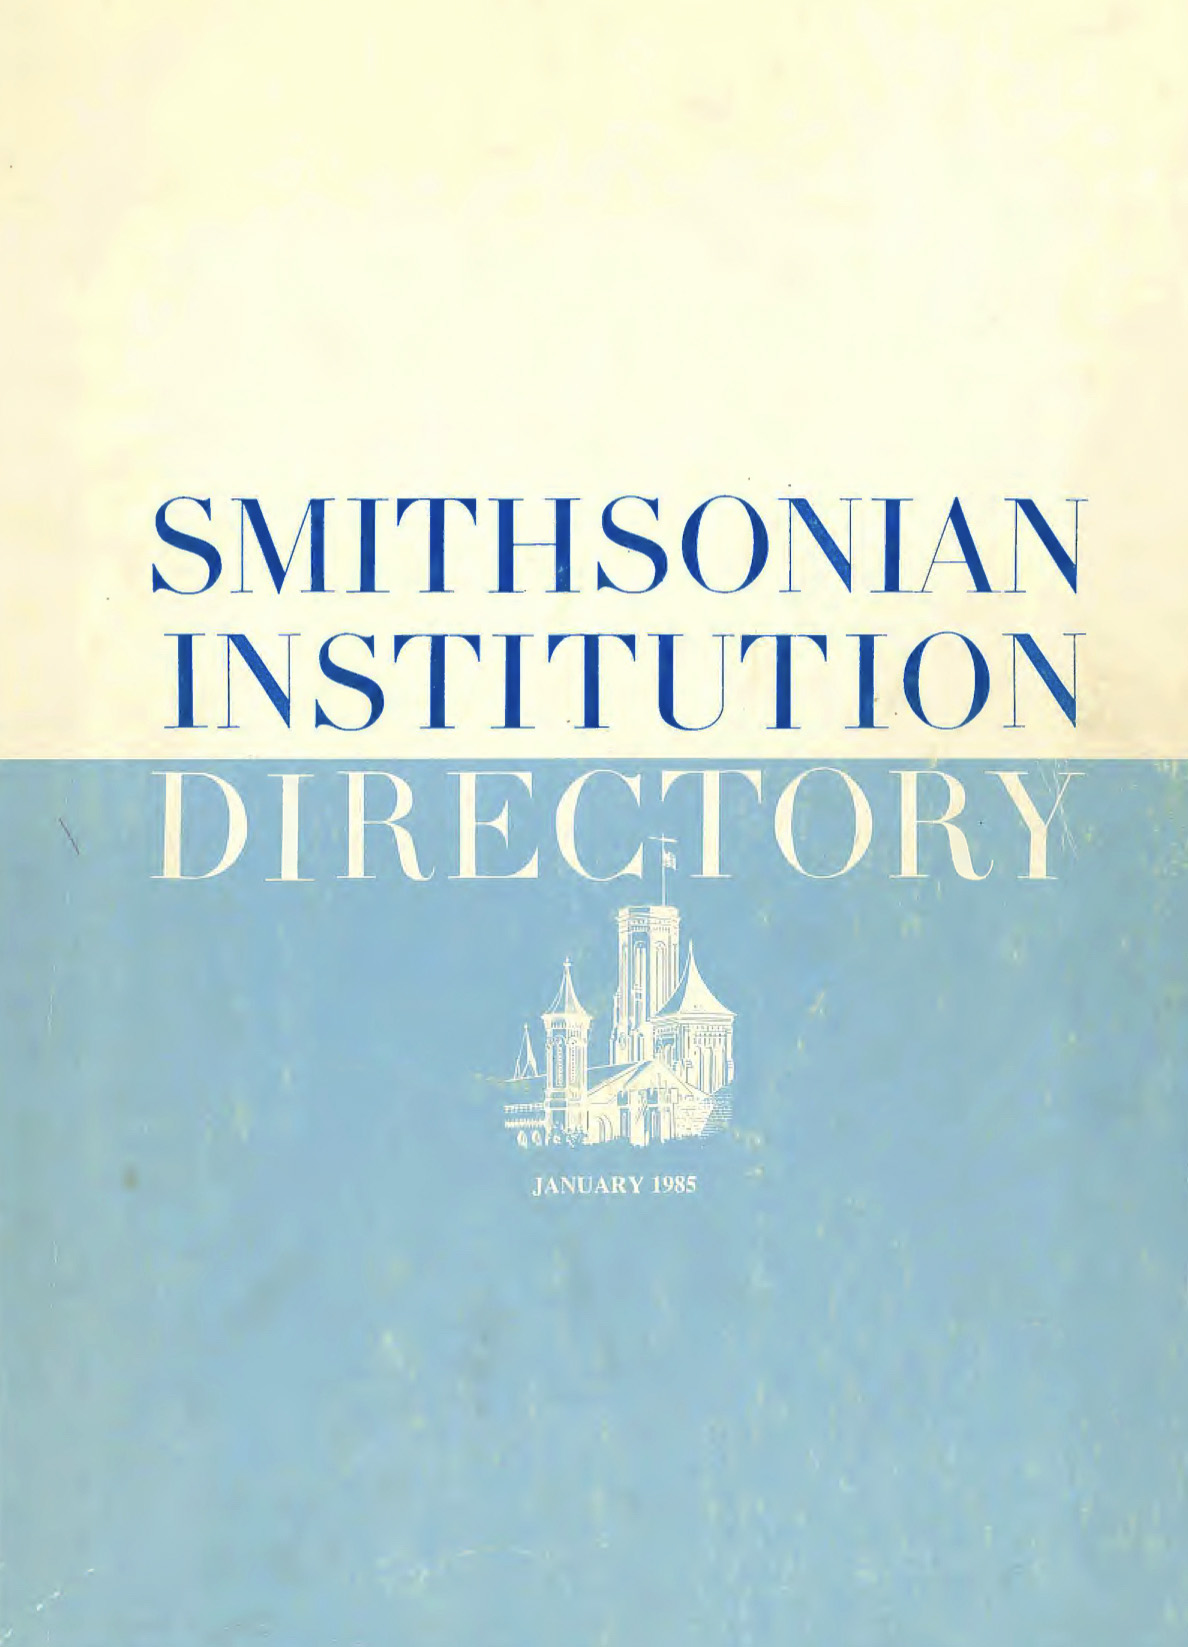 Cover from the directory for the Smithsonian Institution from 1985.